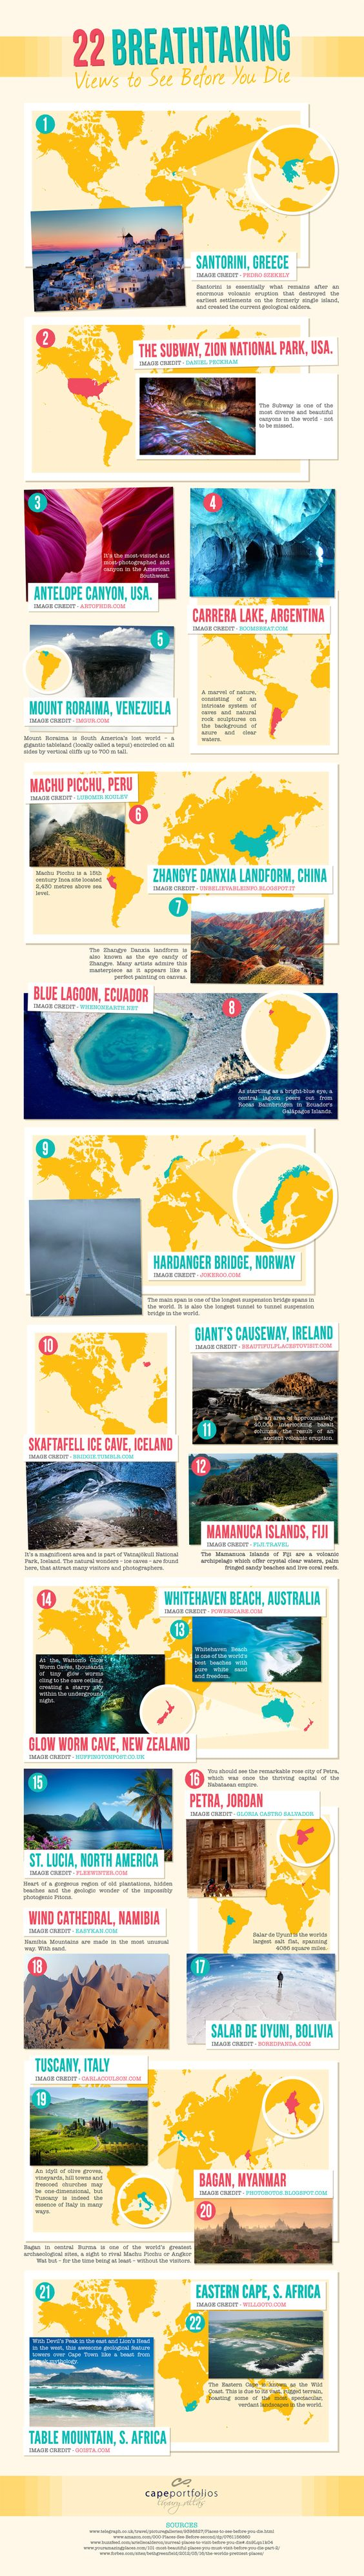 22 Breathtaking Views to See Before You Die #infographic #Travel #infografía